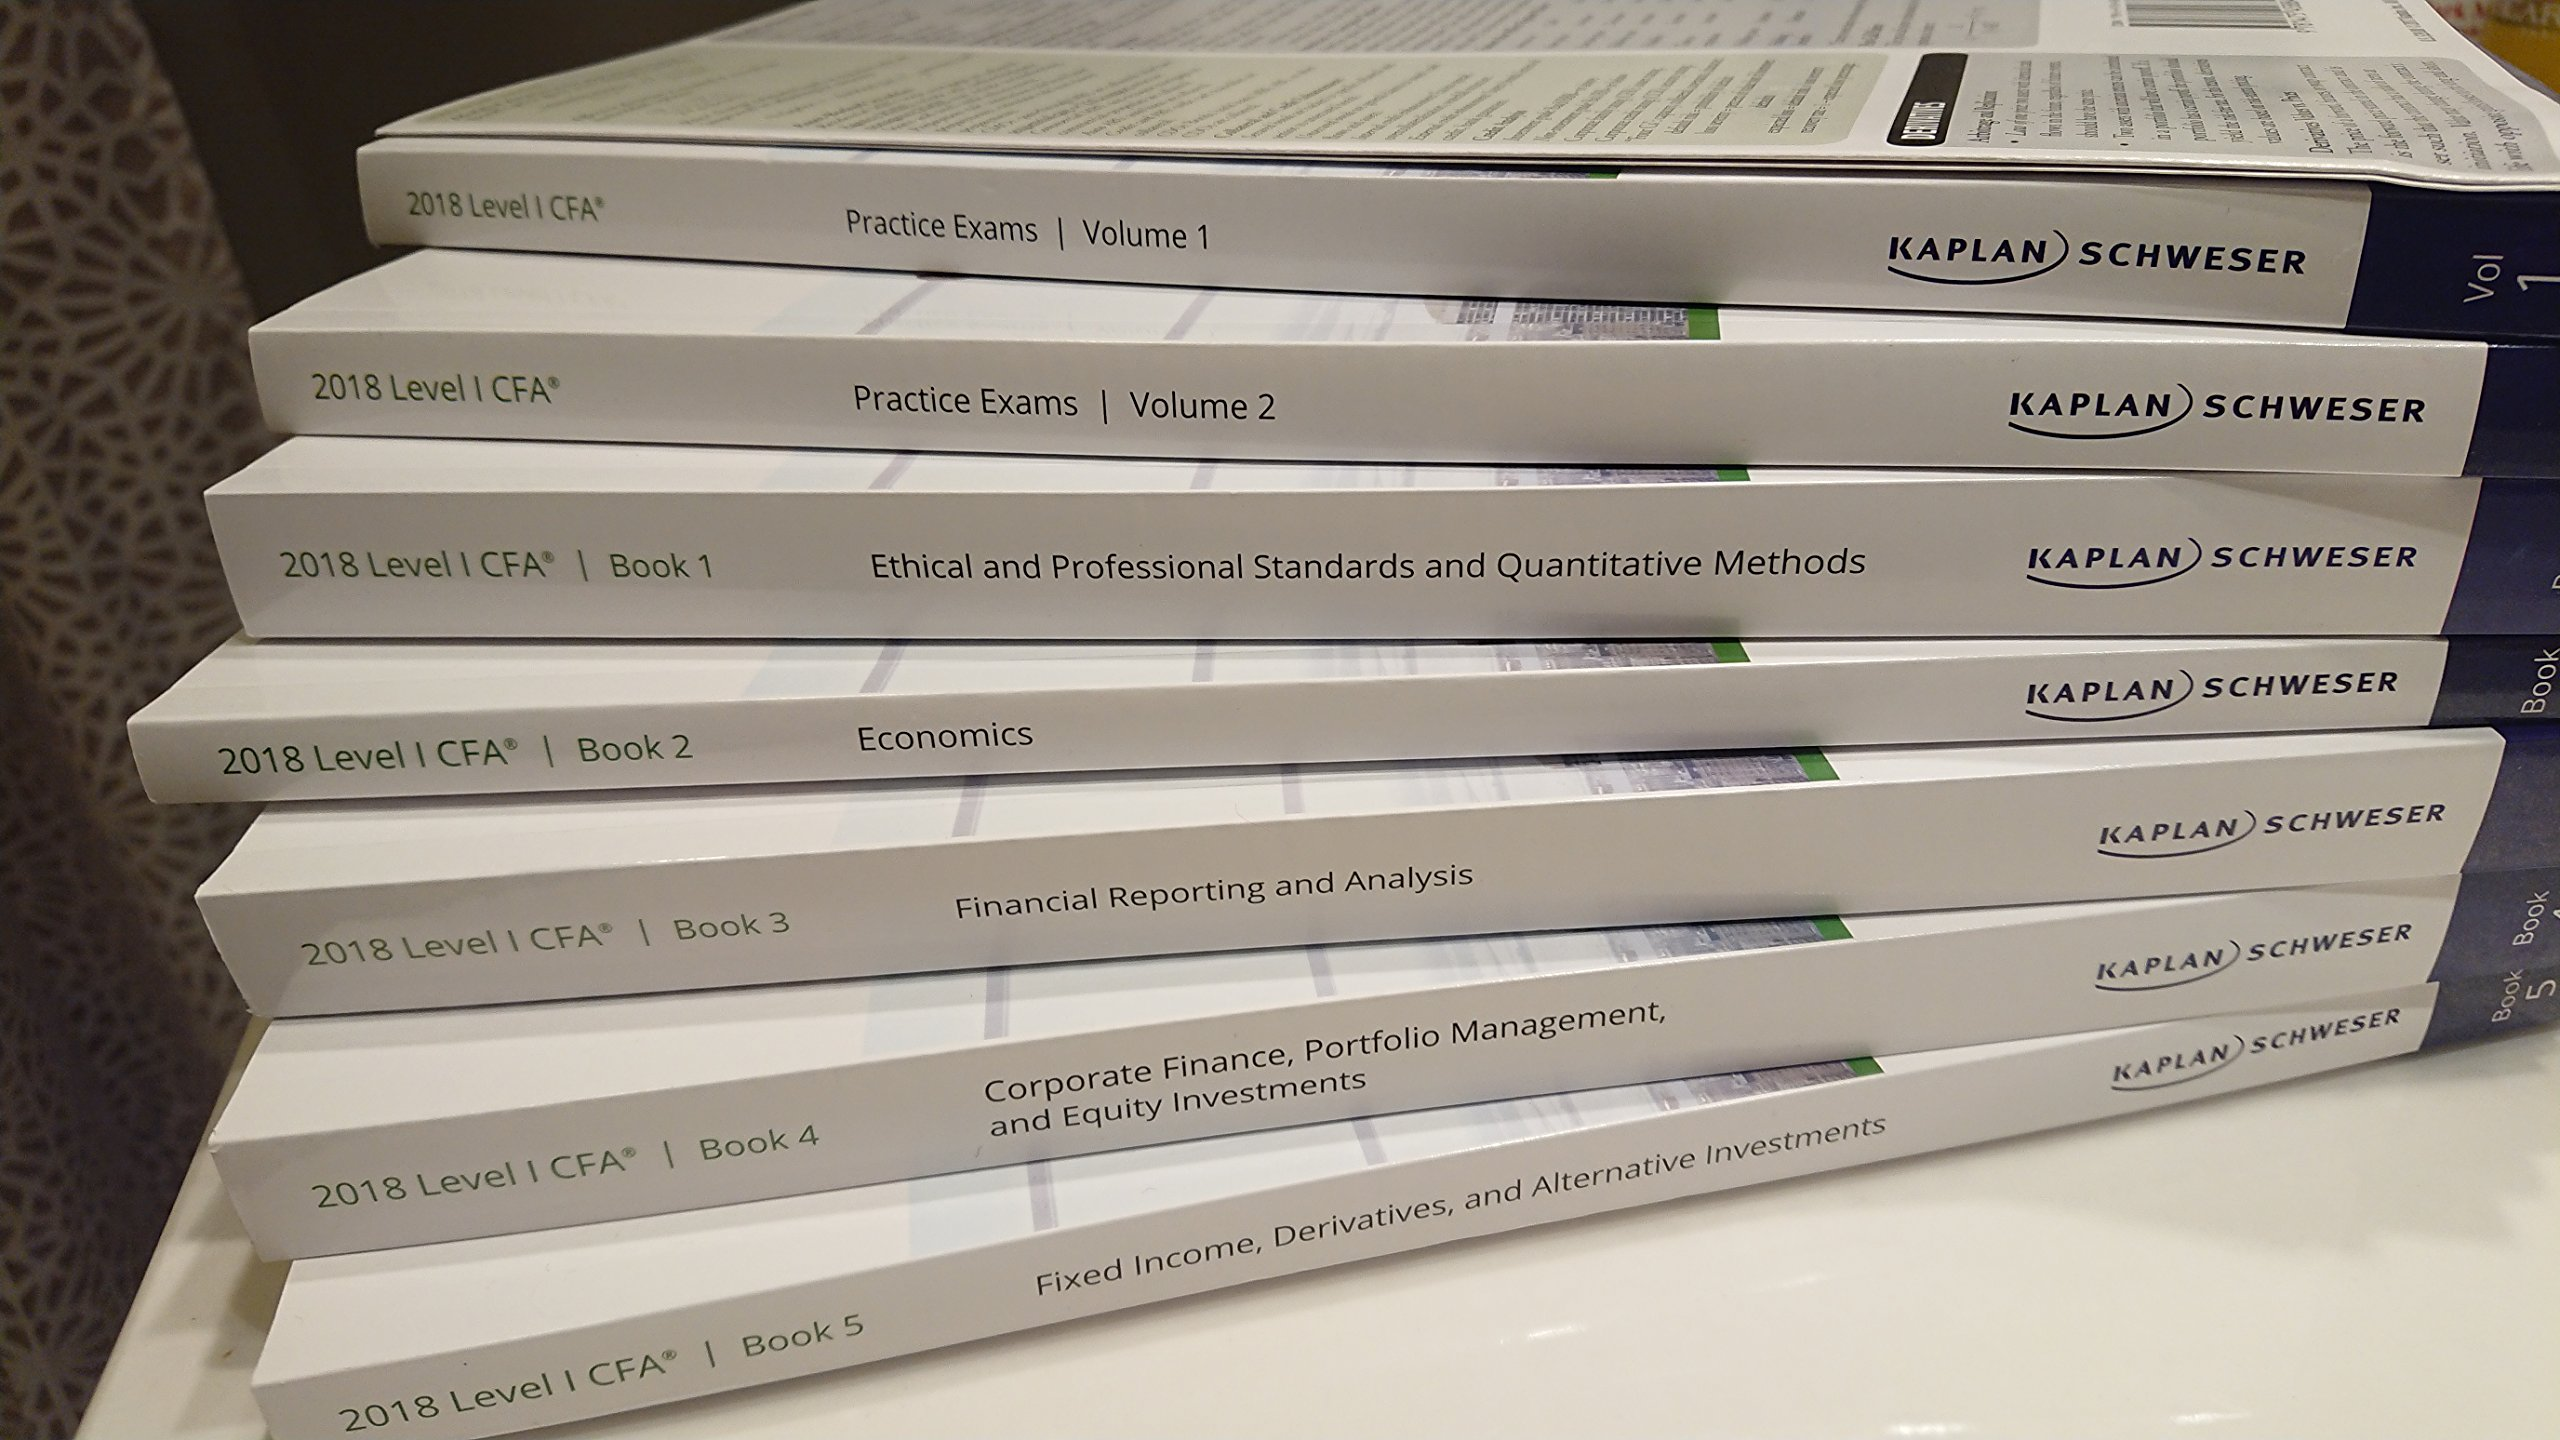 2018 CFA Level 1 Kaplan Schweser: Books 1-5, Practice Exam